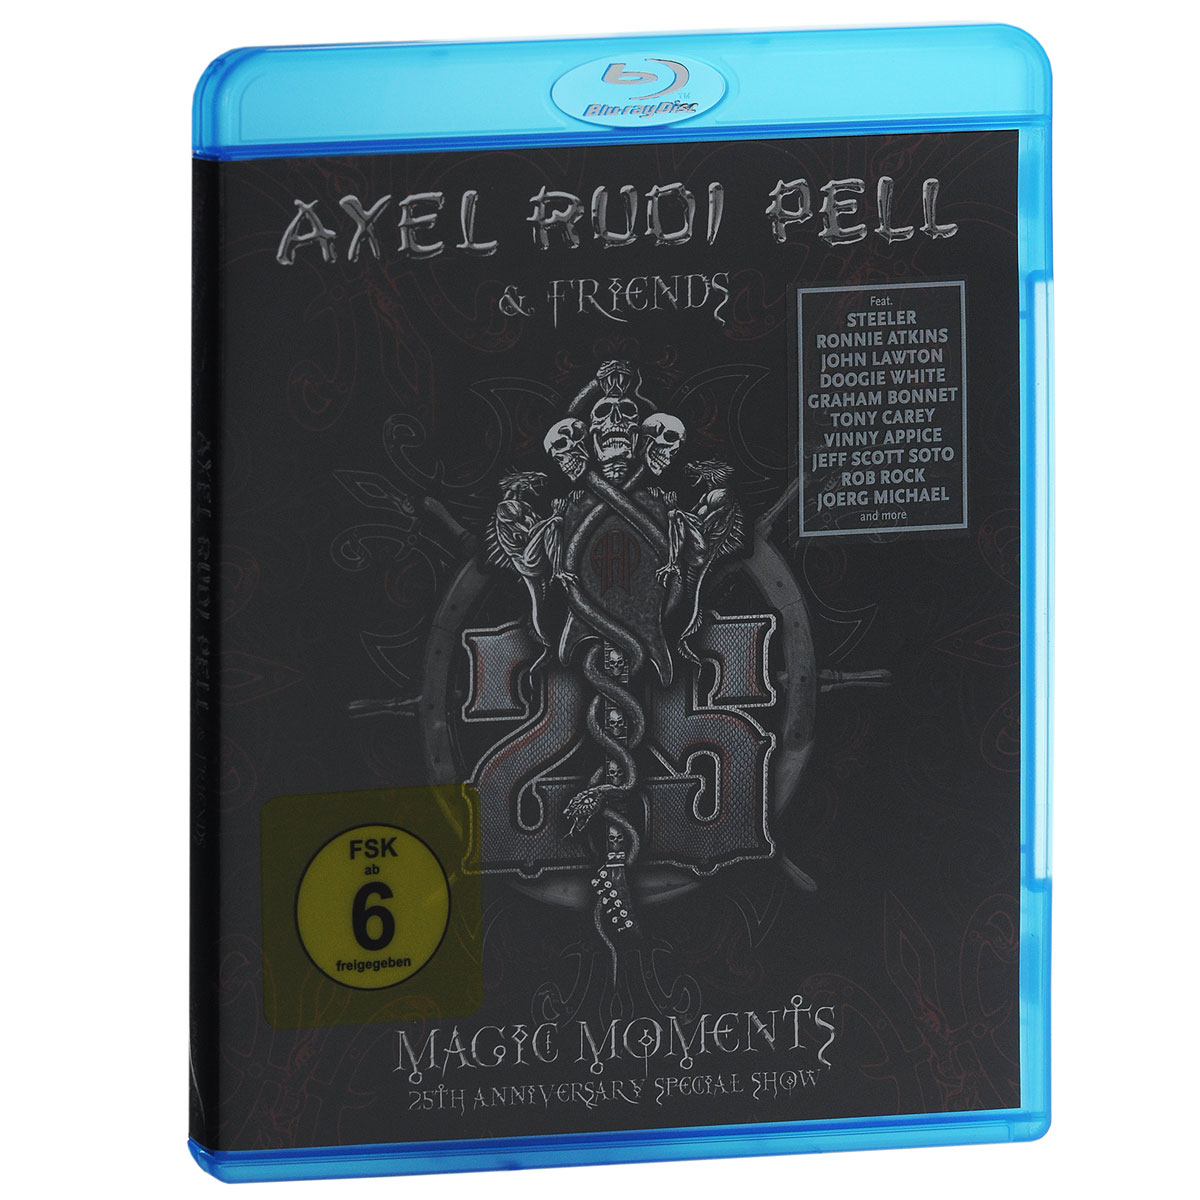 Axel Rudi Pell & Friends. Magic Moments. 25th Anniversary Special Show (Blu-ray)